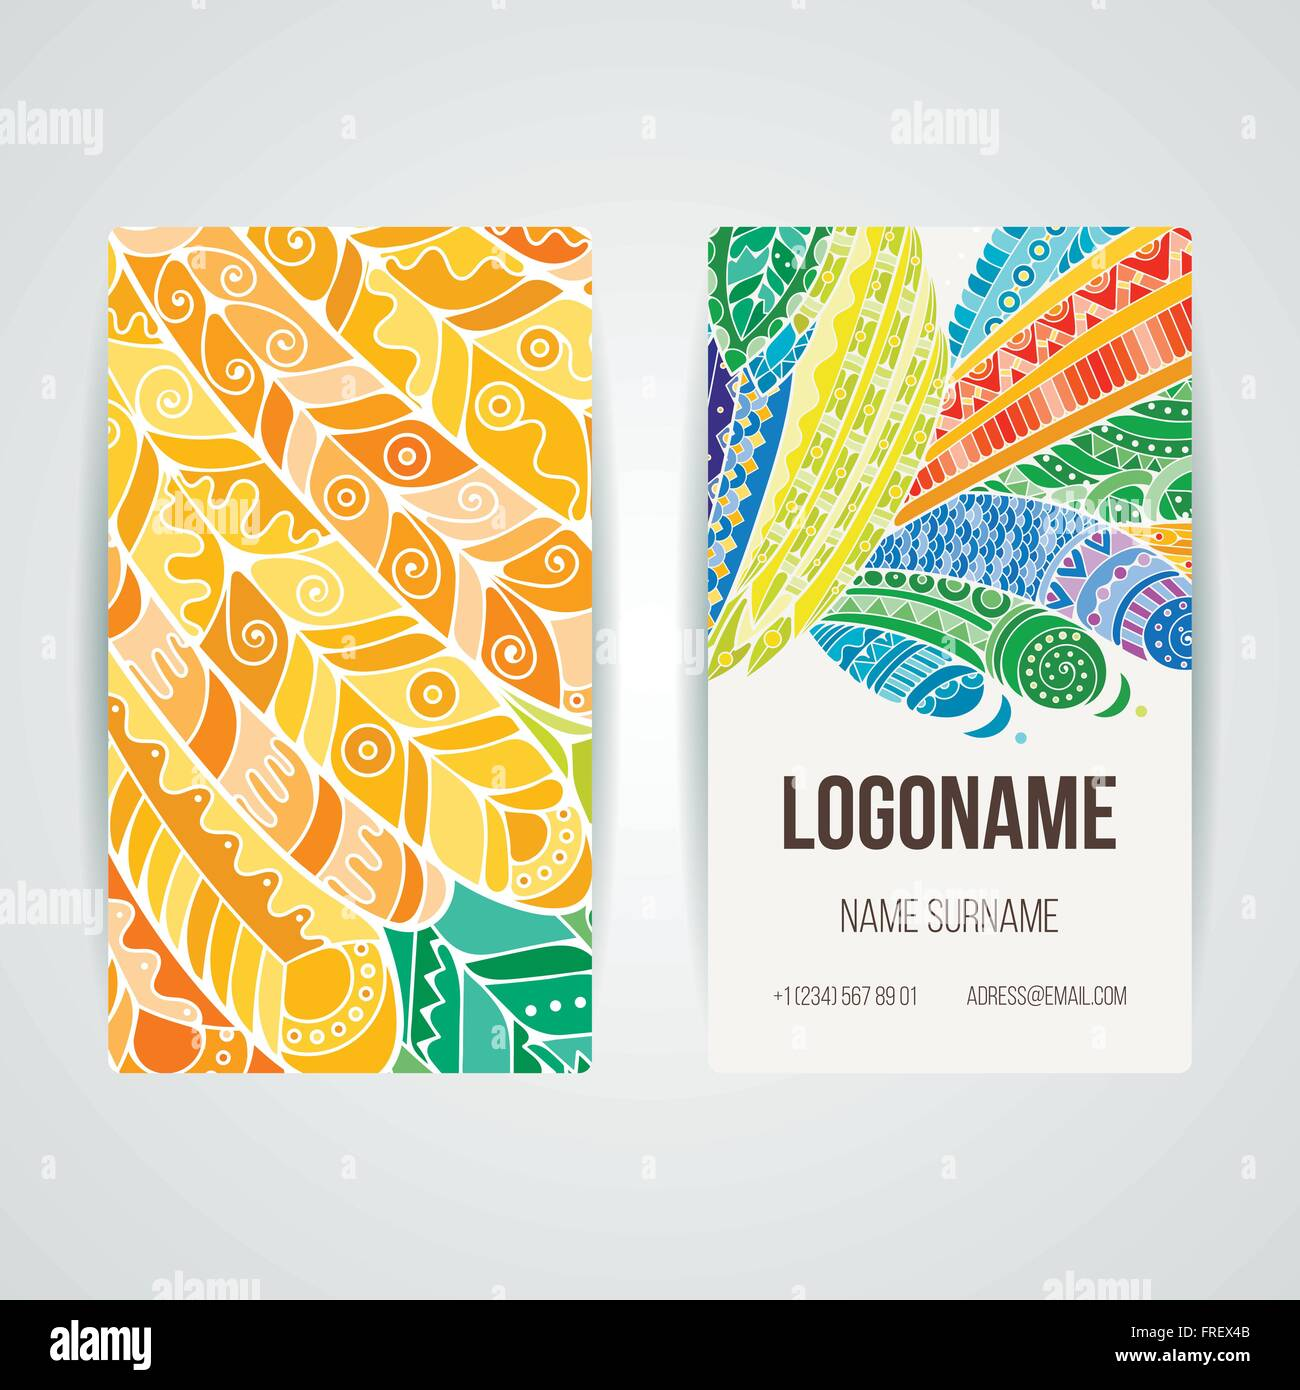 Set Of Vector Design Templates Brochures In Random Colorful Style